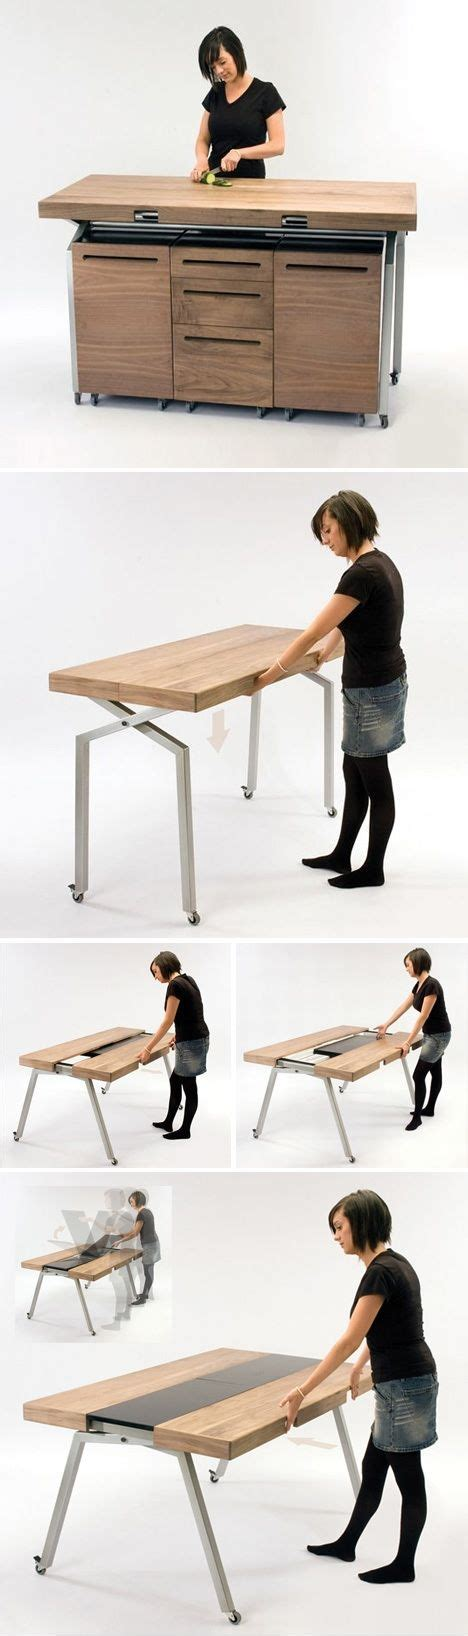 compact furniture design kitchen workspace converts to dining table dornob